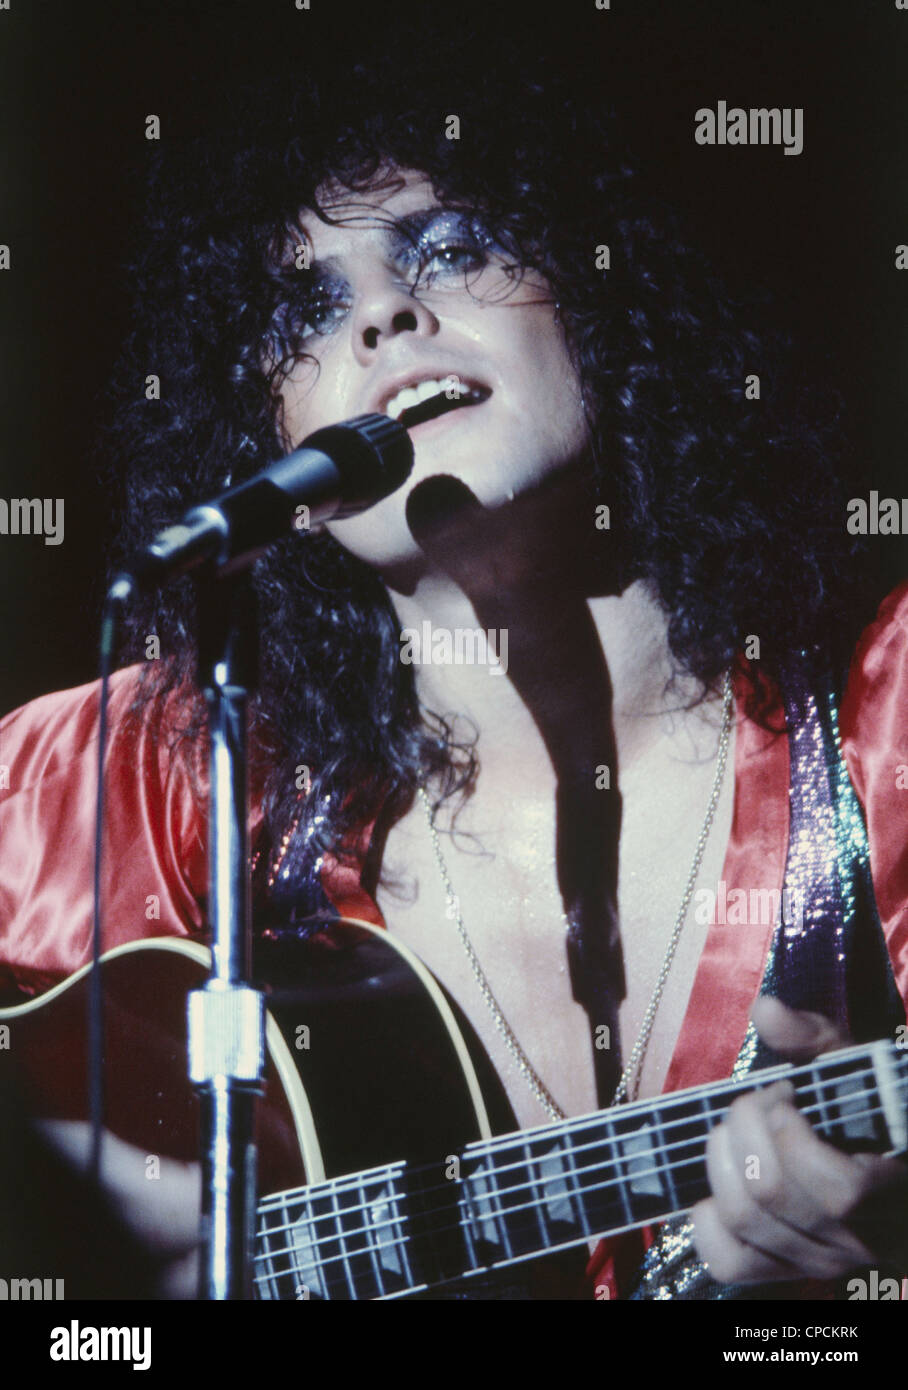 MARK BOLAN in T-Rex - UK rock musician about 1978. Photo Jeffrey Mayer - Stock Image